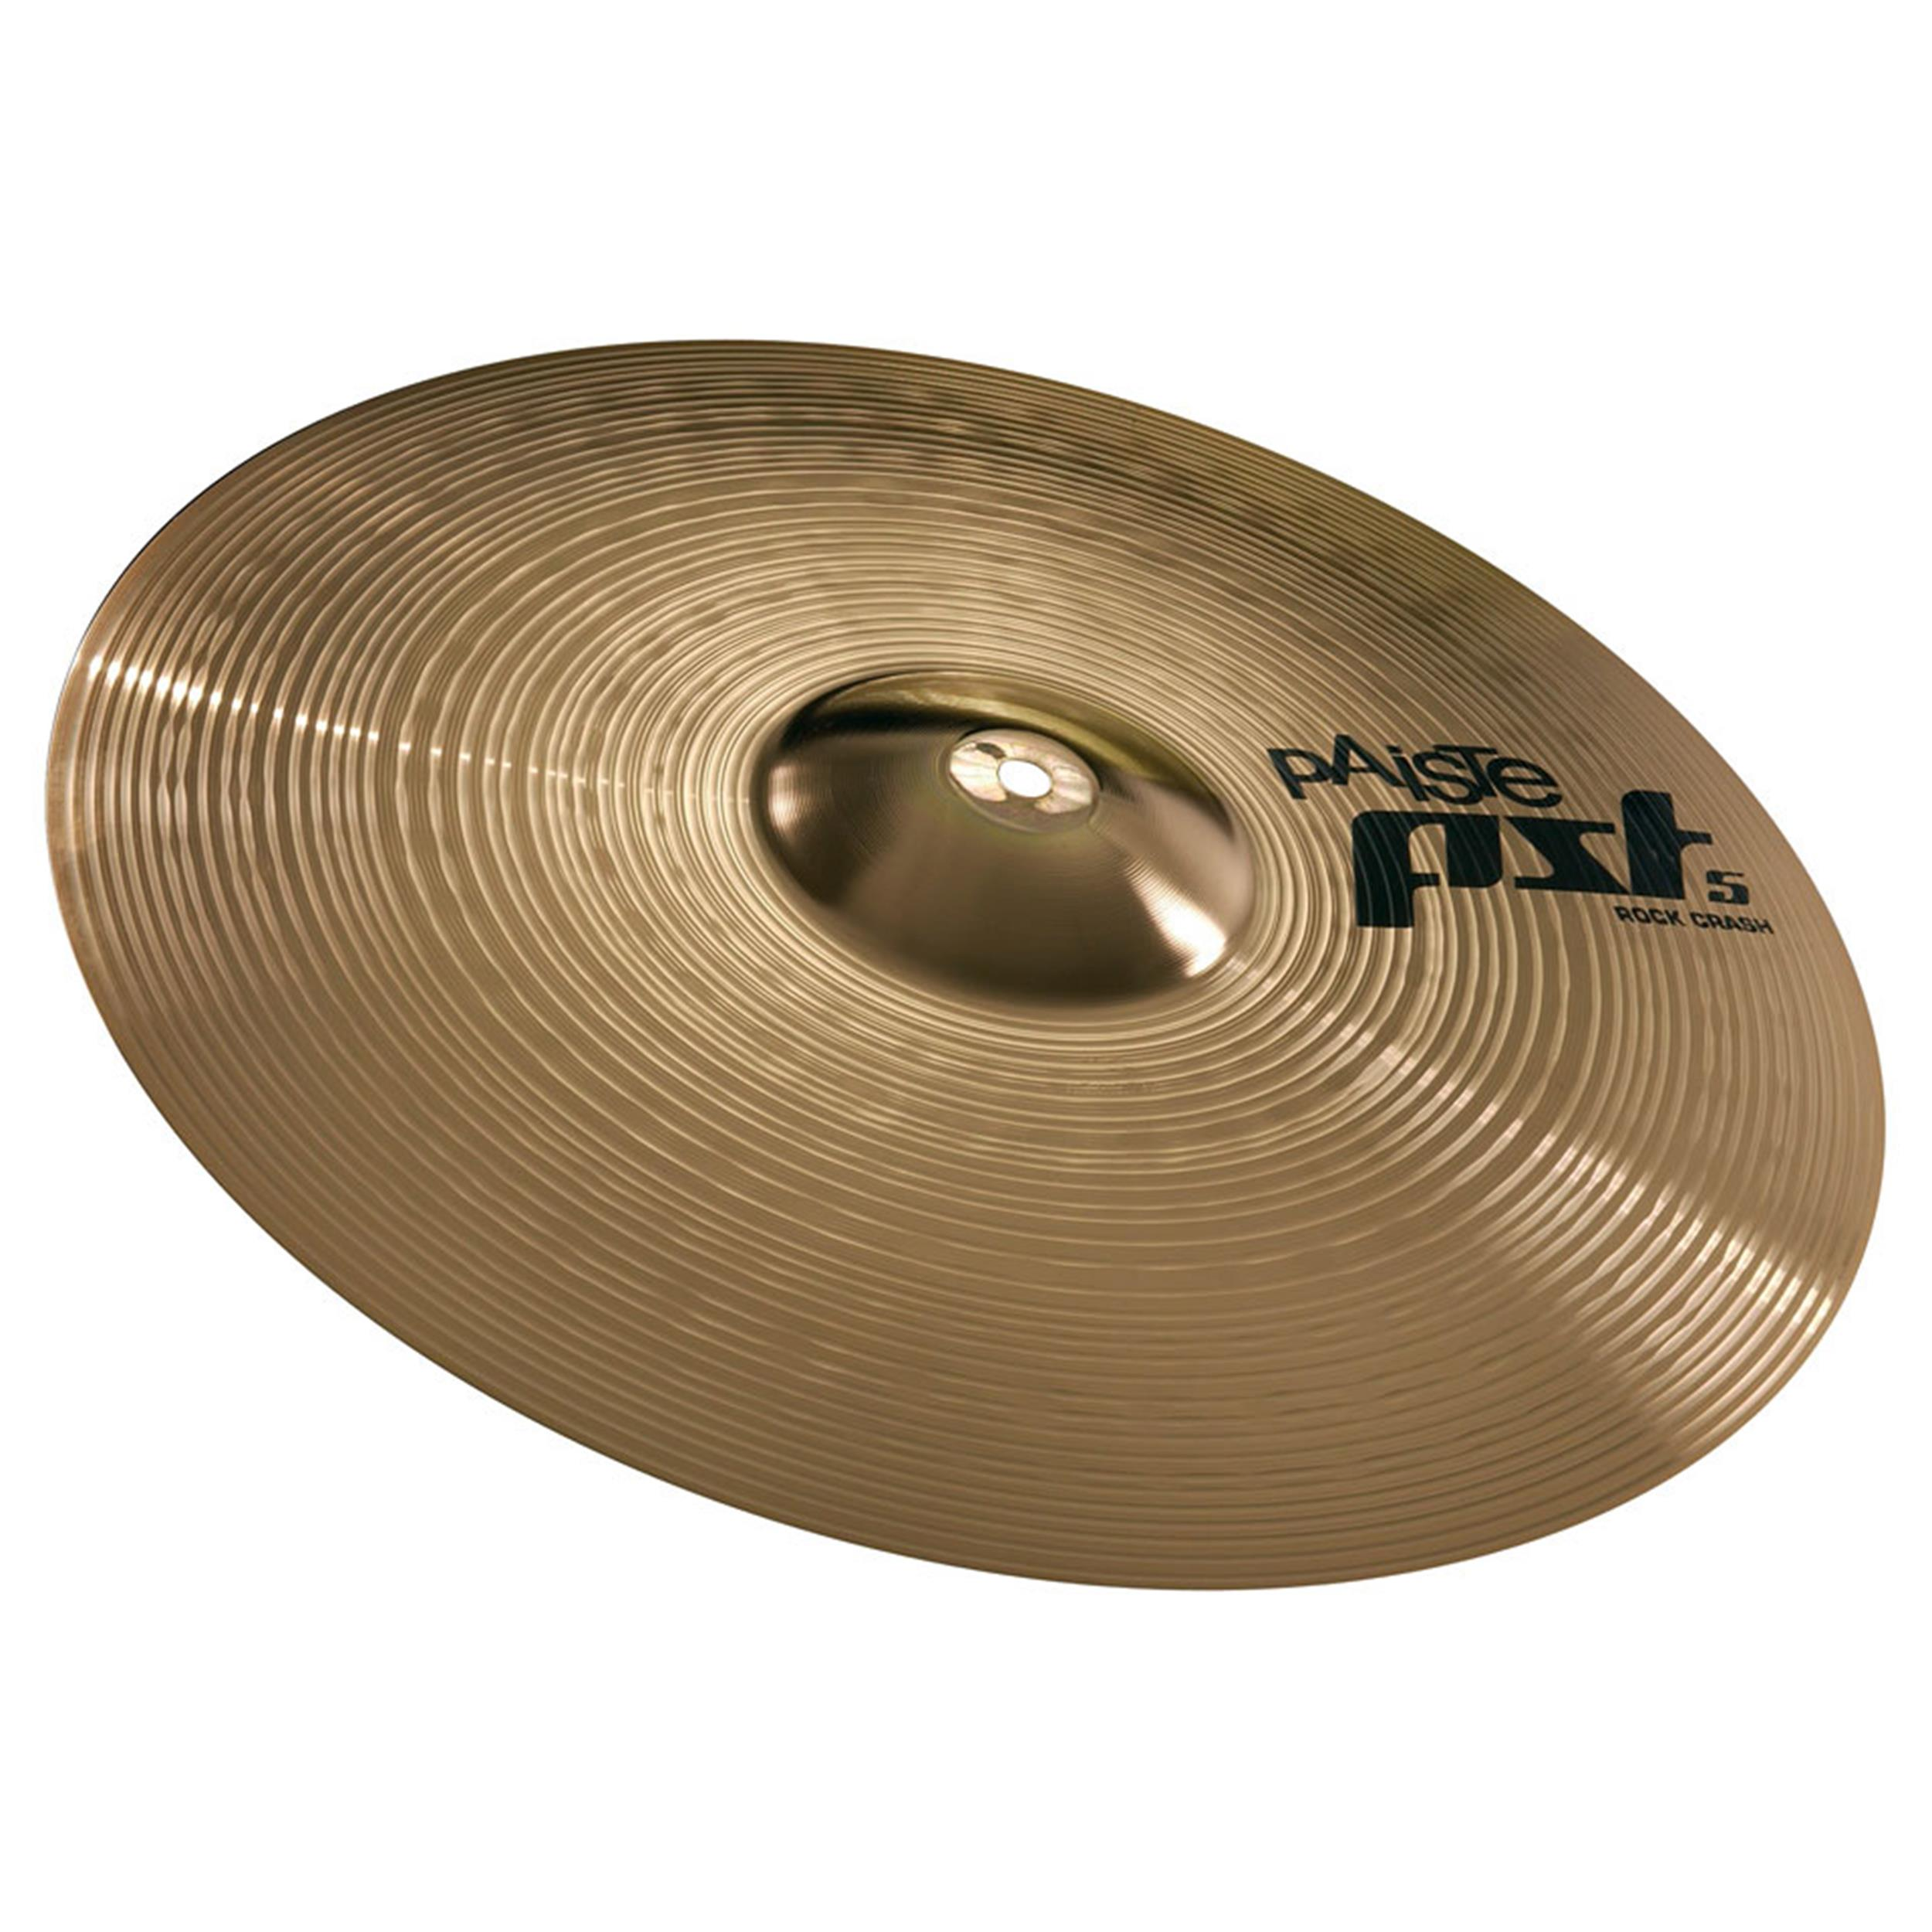 PAISTE PST5 CRASH RIDE 18